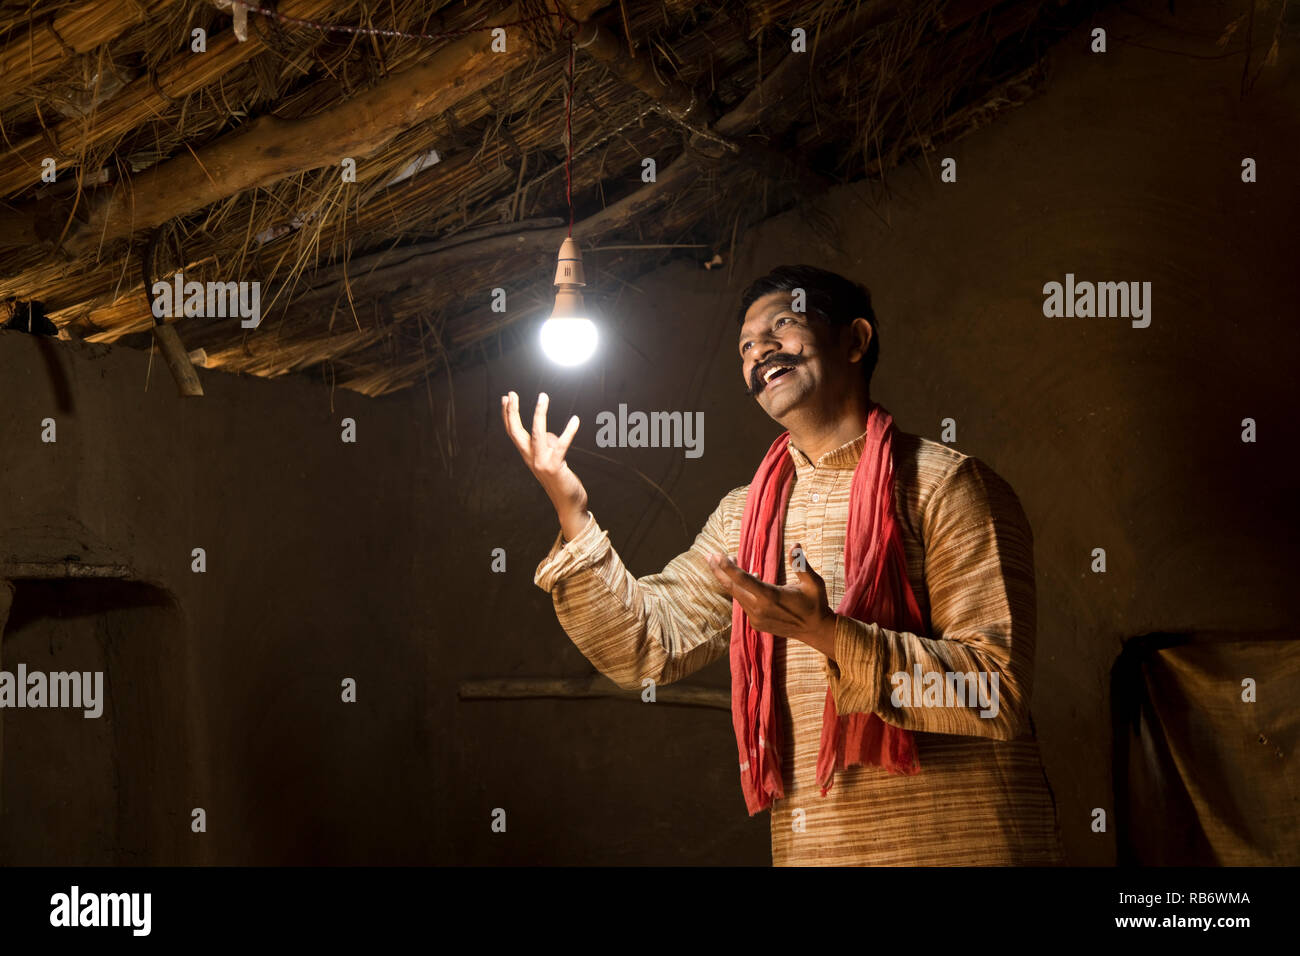 Rural Indian man delighted at the glow of light bulb and electricity reaching his home after long wait - Stock Image